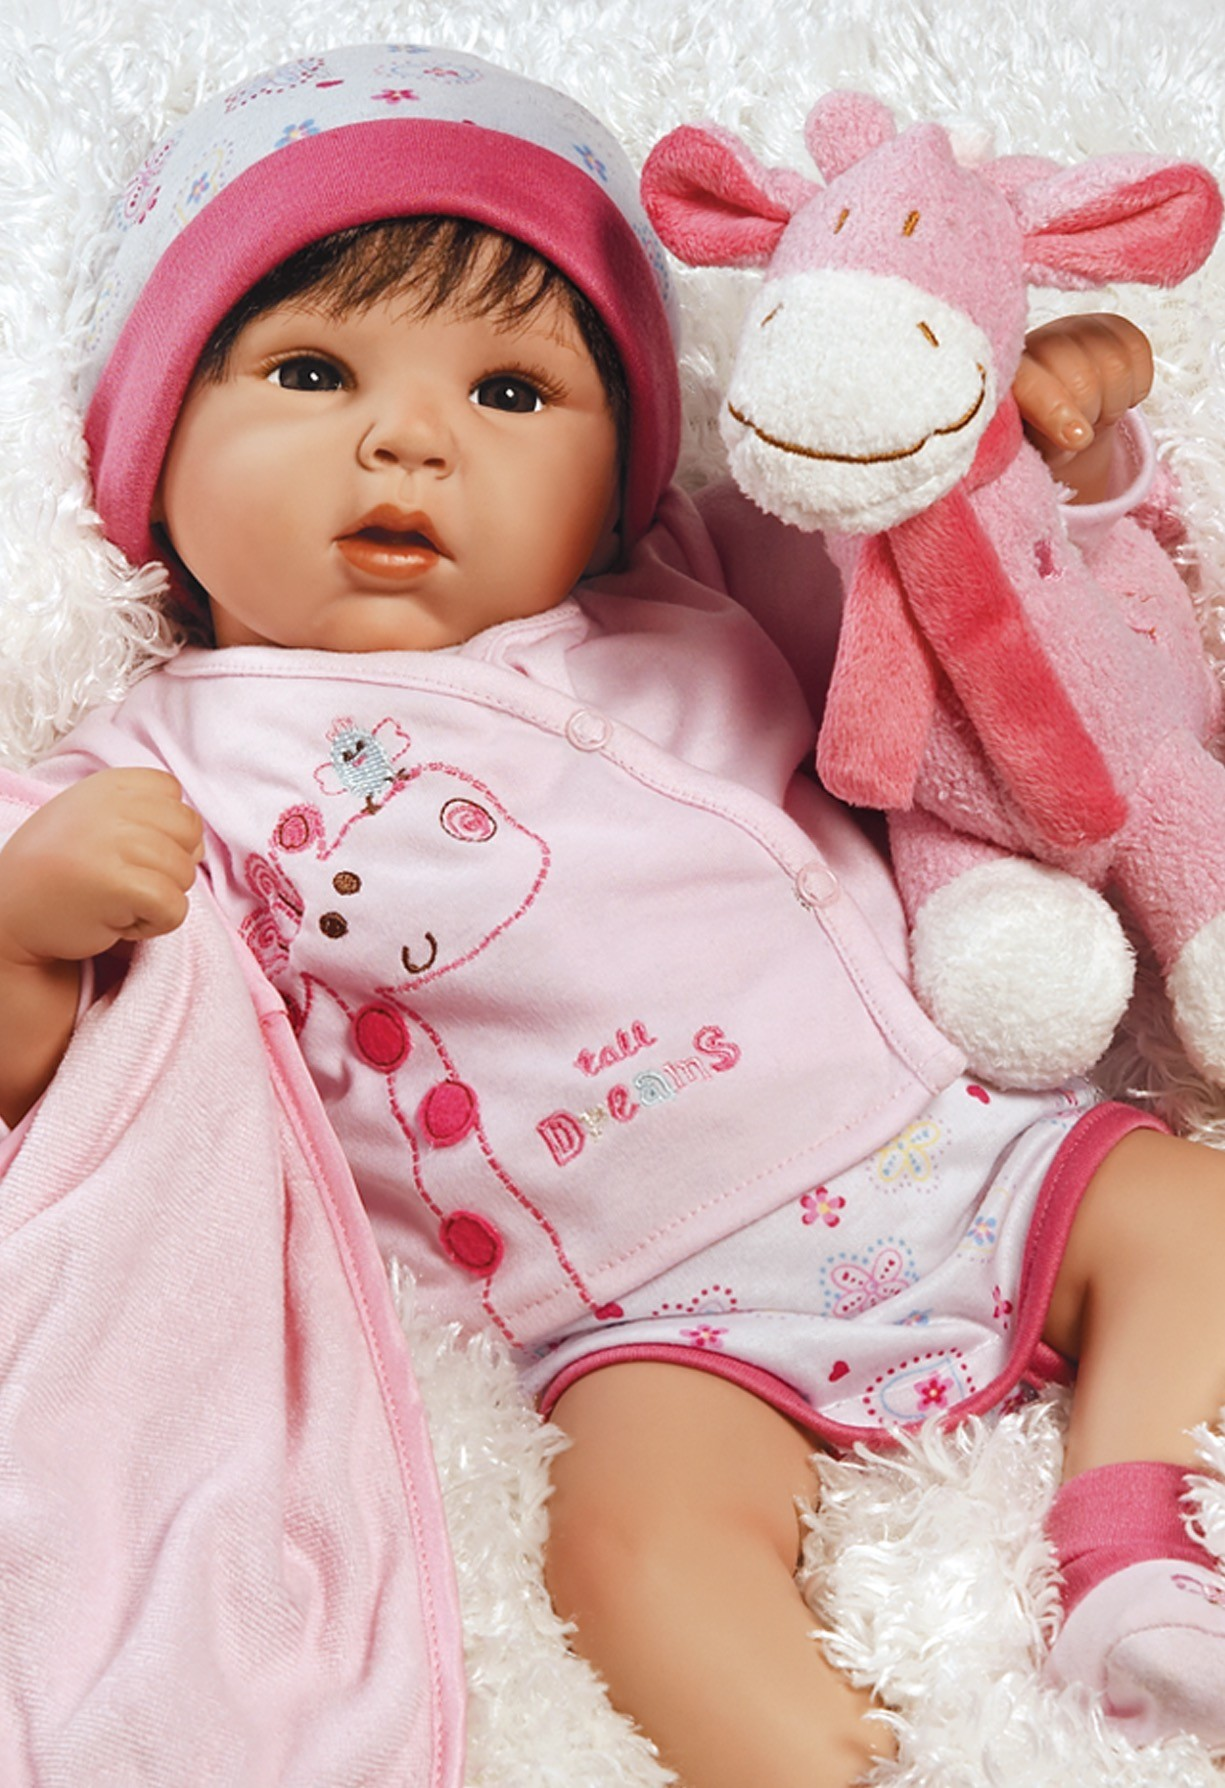 Realistic & Lifelike Baby Dolls For Sale - Paradise Galleries